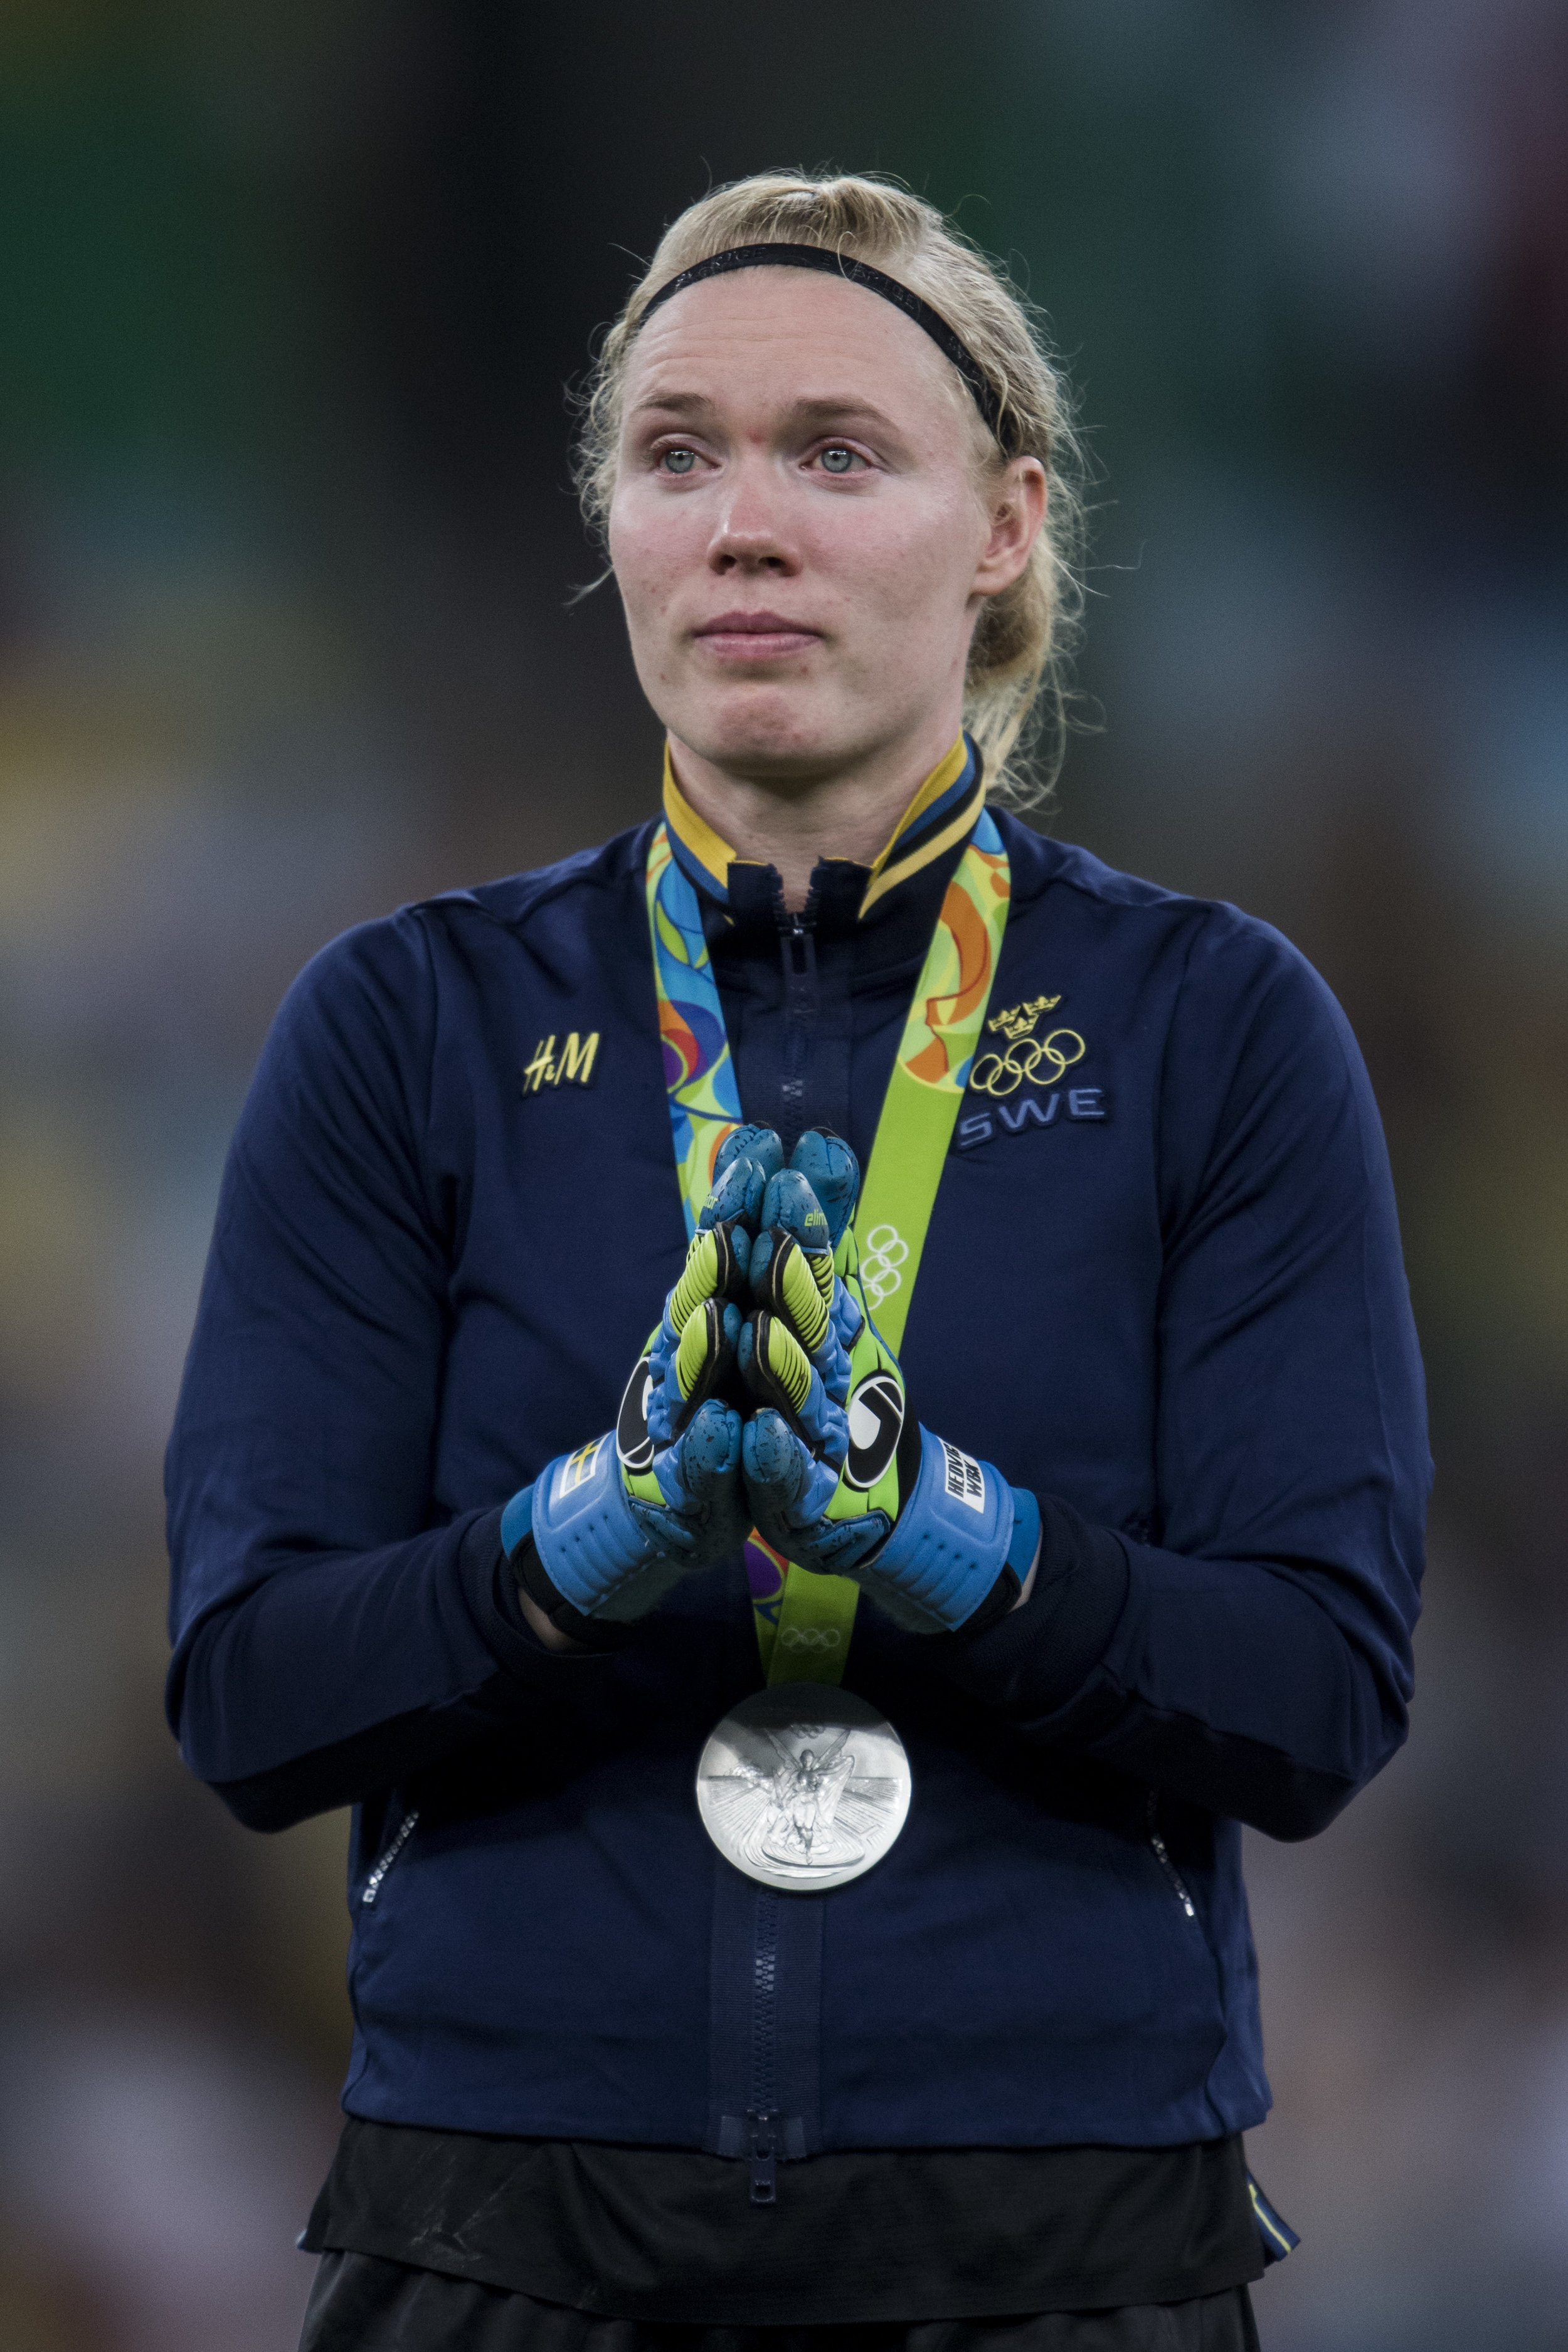 Me and the Swedish team won a silver medal at the Rio Olympics 2016. Pic by Bildbyrån.se